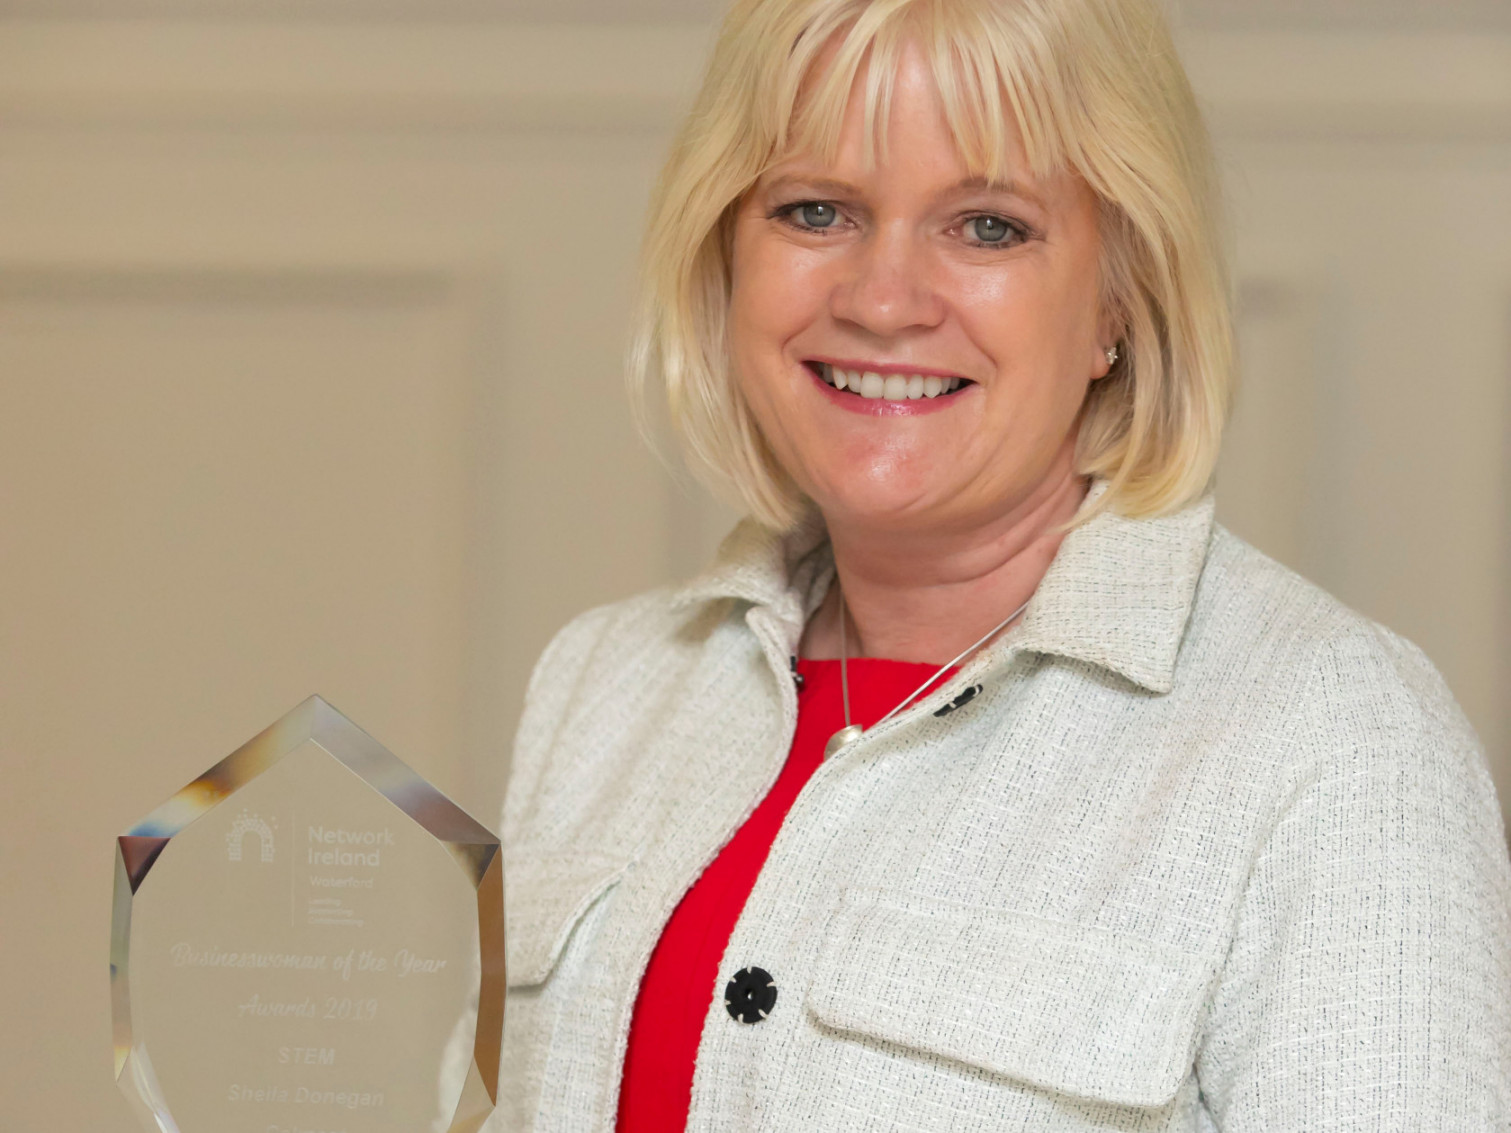 Dr Sheila Donegan receiving the  Network Ireland Waterford region Women in Business STEM award which led to representing Waterford in the Network Ireland National Business Awards